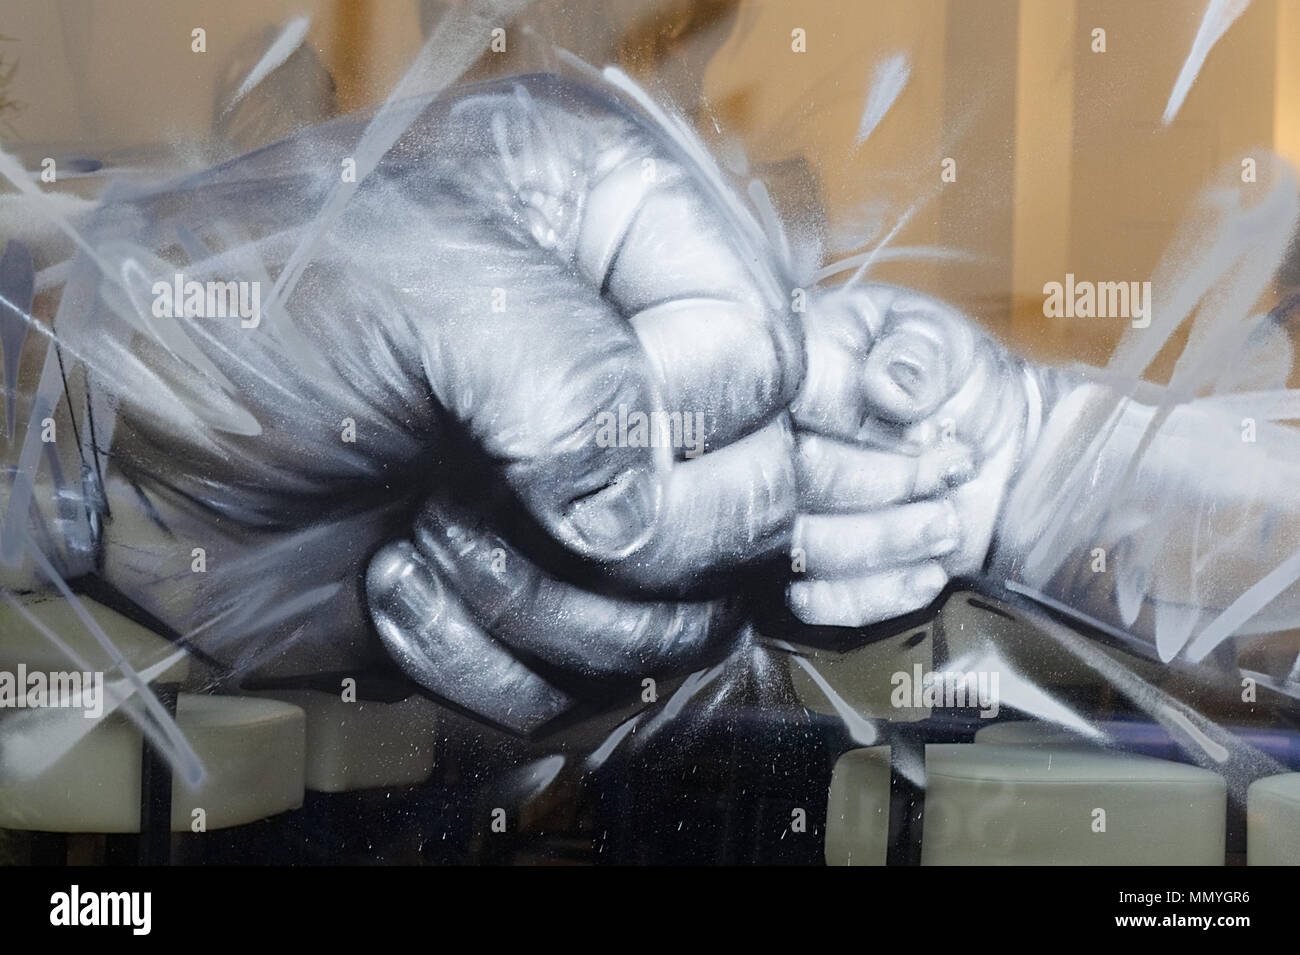 shop window display of child and adult fists clashing in love - Stock Image